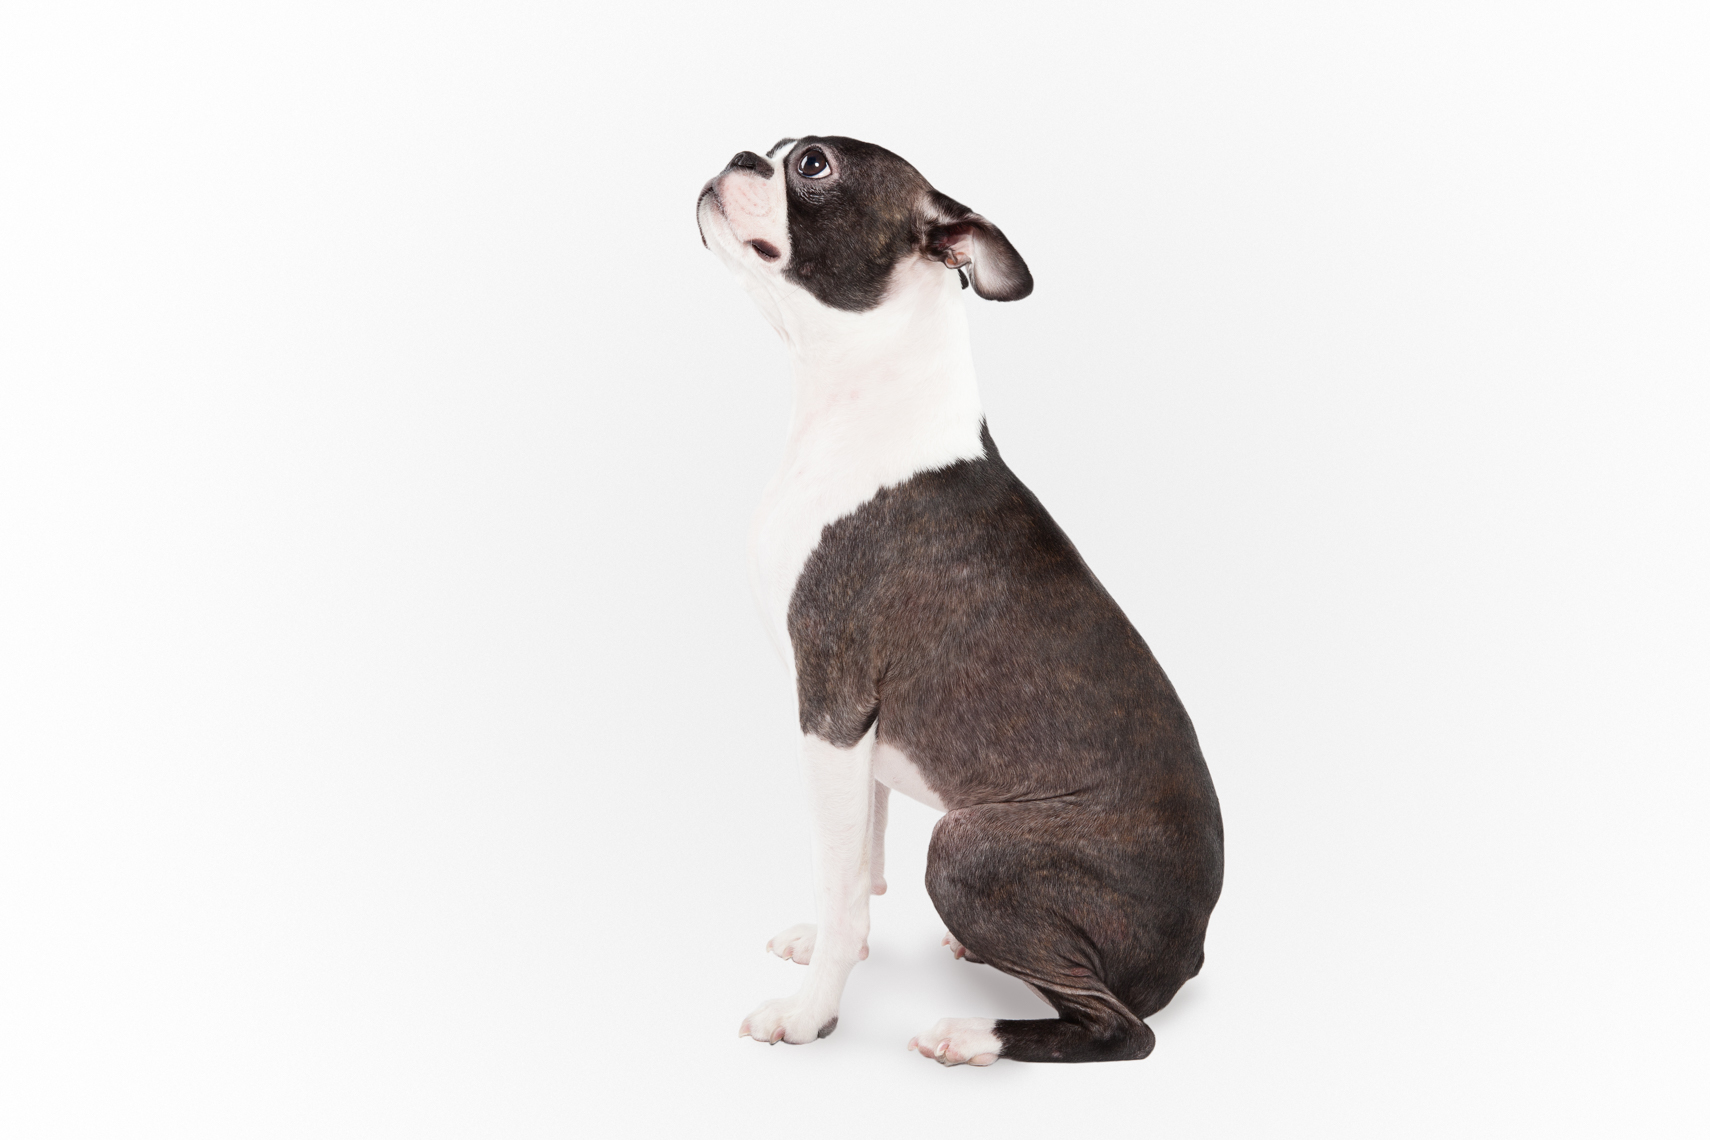 Profile of a Boston Terrier